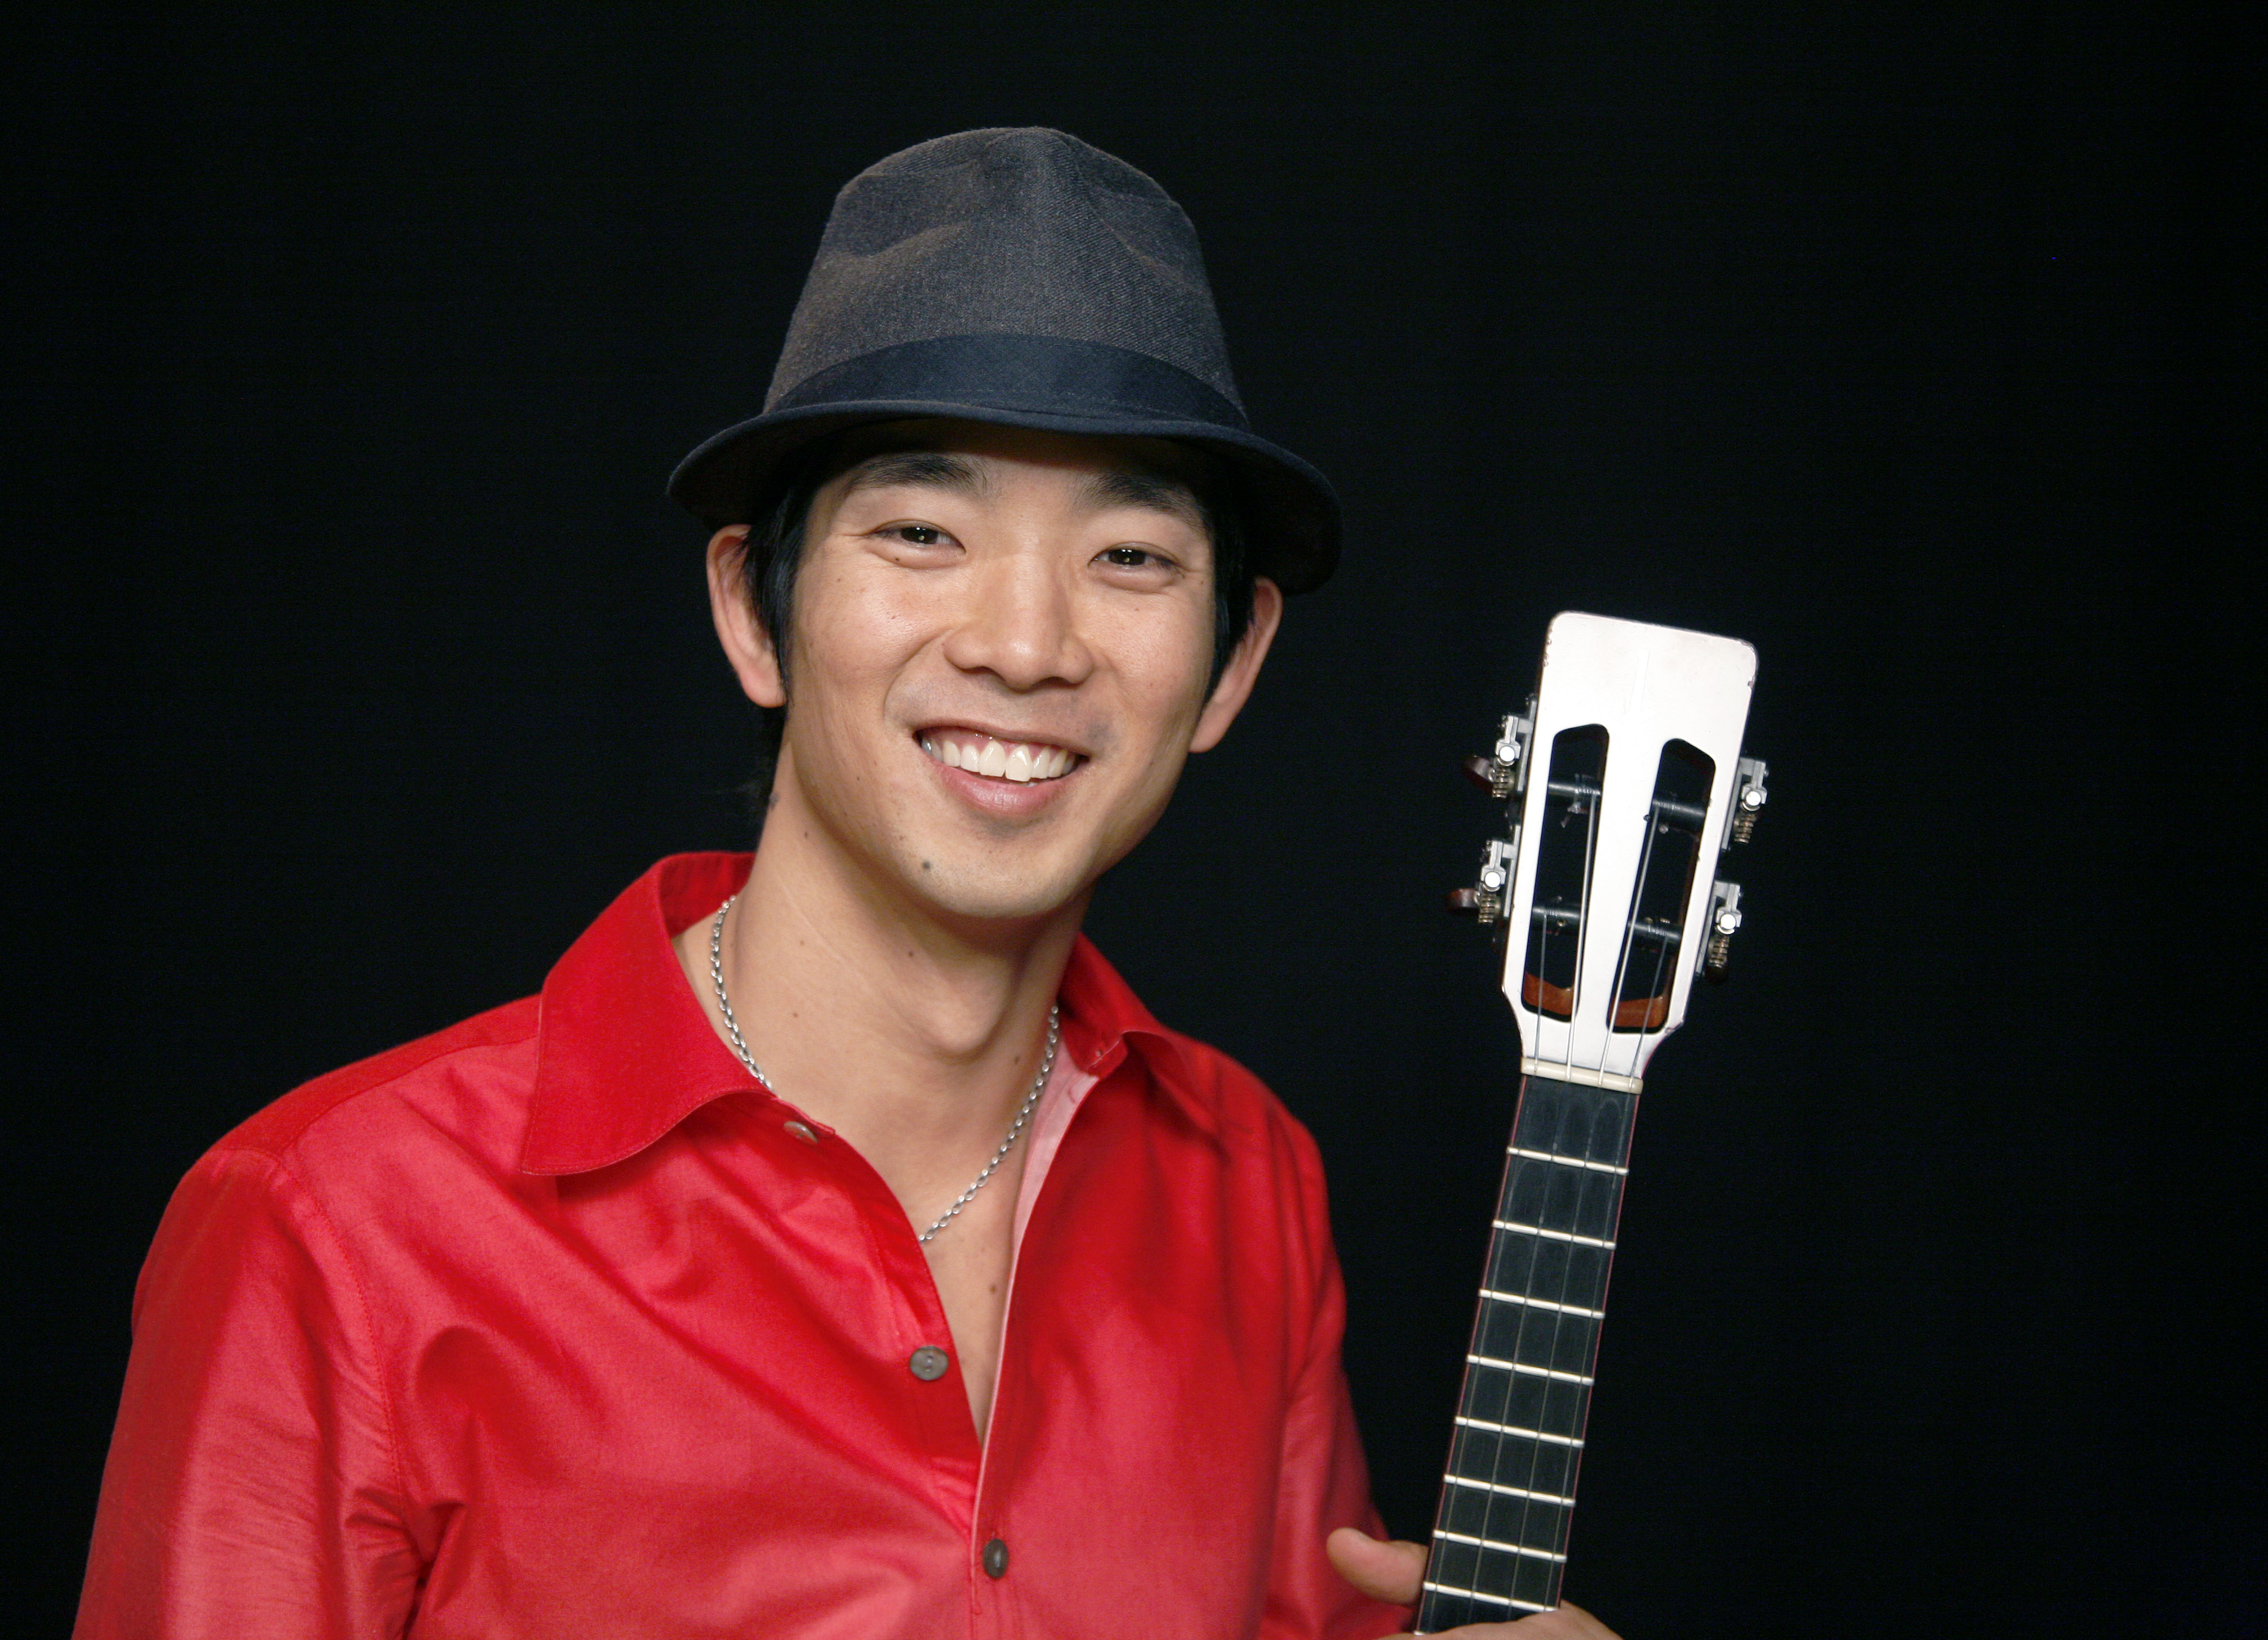 In this Jan. 24, 2011 photo, recording artist Jake Shimabukuro poses for a portrait in New York. Shimabukuro will appear at this year's RootsTech, scheduled for Feb. 27-March 2 at the Salt Palace Convention Center.